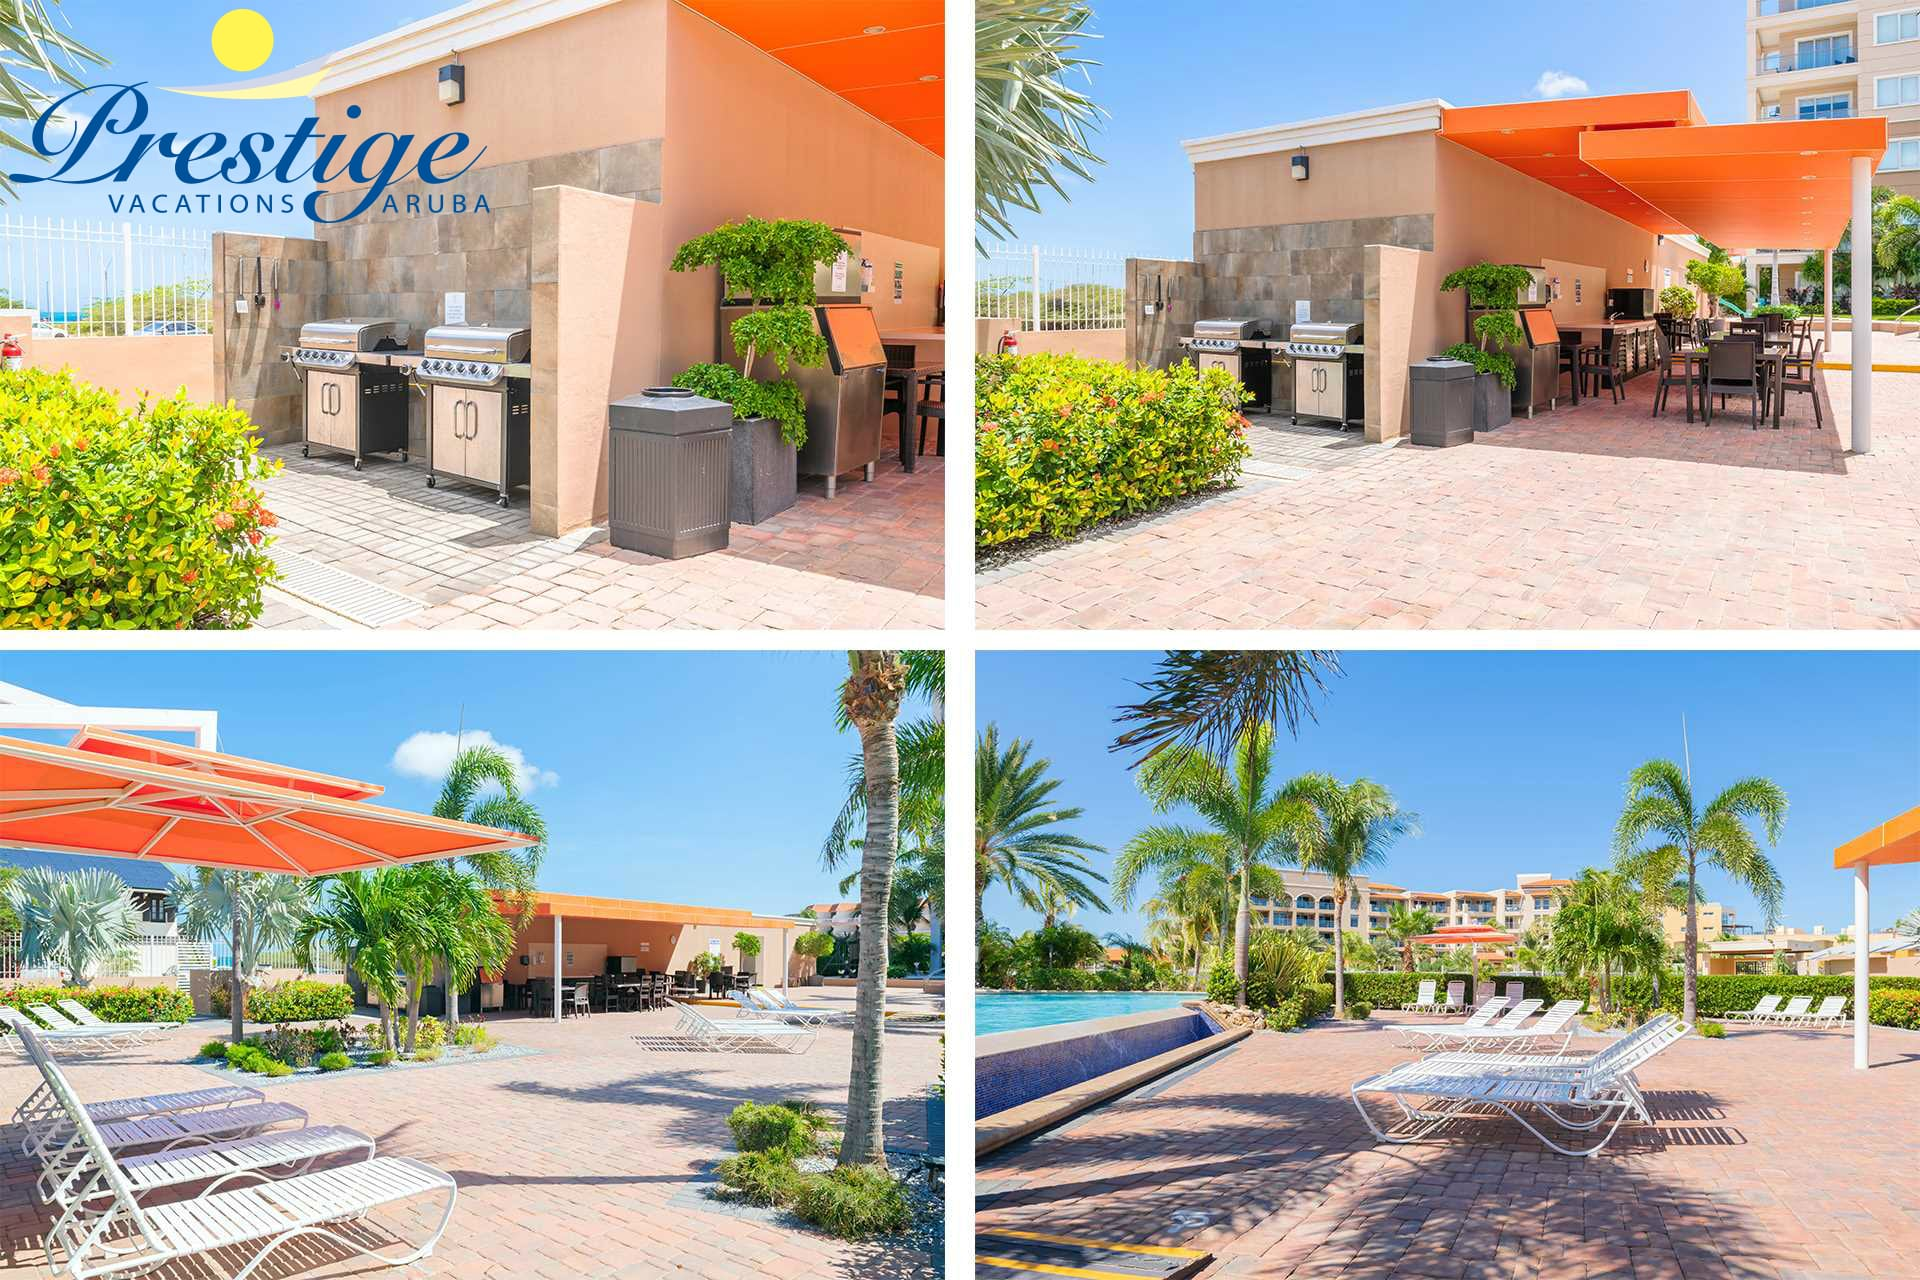 The LeVent Beach Resort Aruba outdoor dining area with 2 BBQ grills (free of charge)